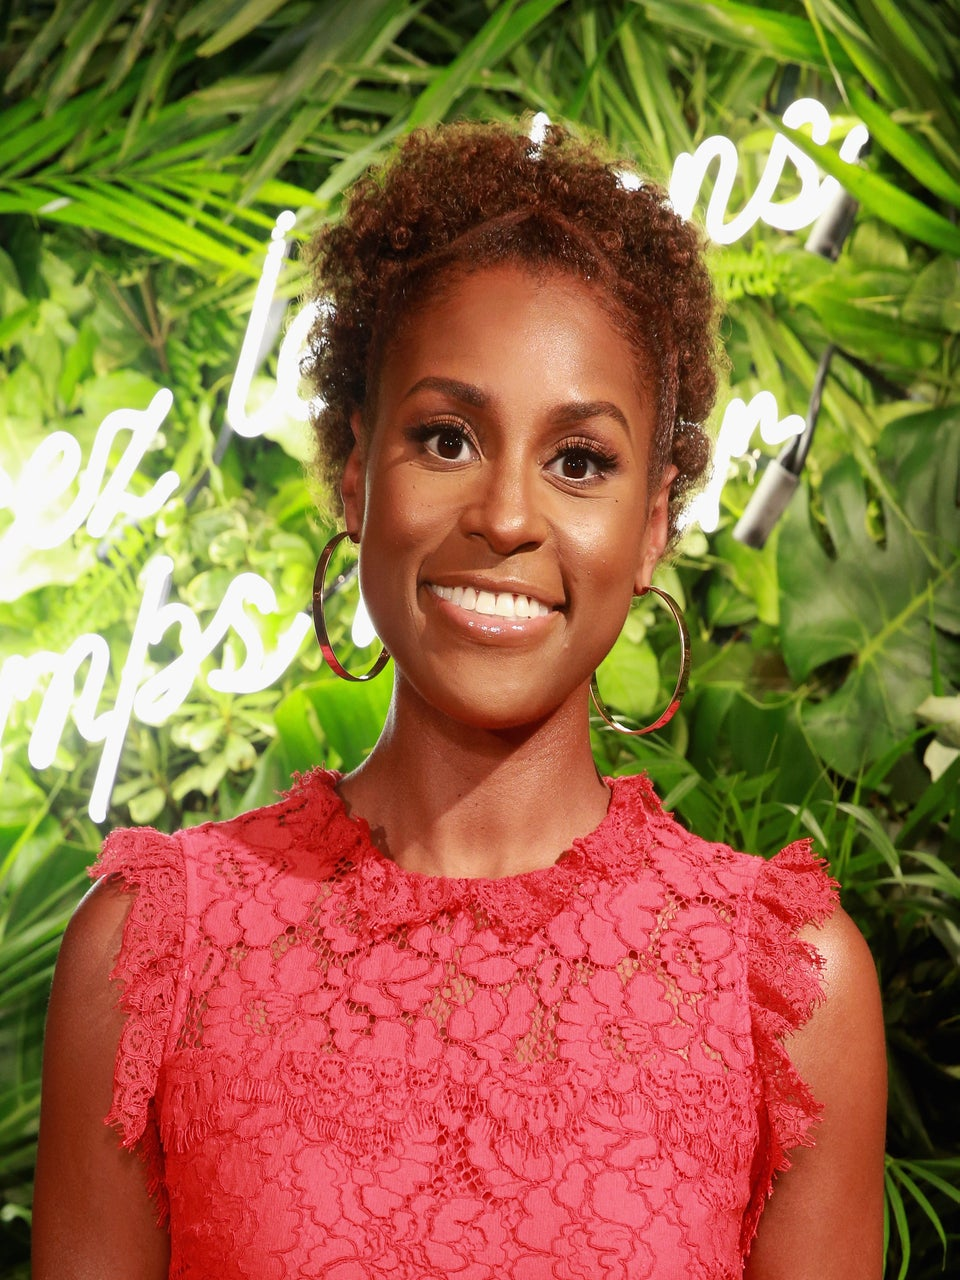 Issa Rae Is Ready To Tackle LGBT Issues On 'Insecure'